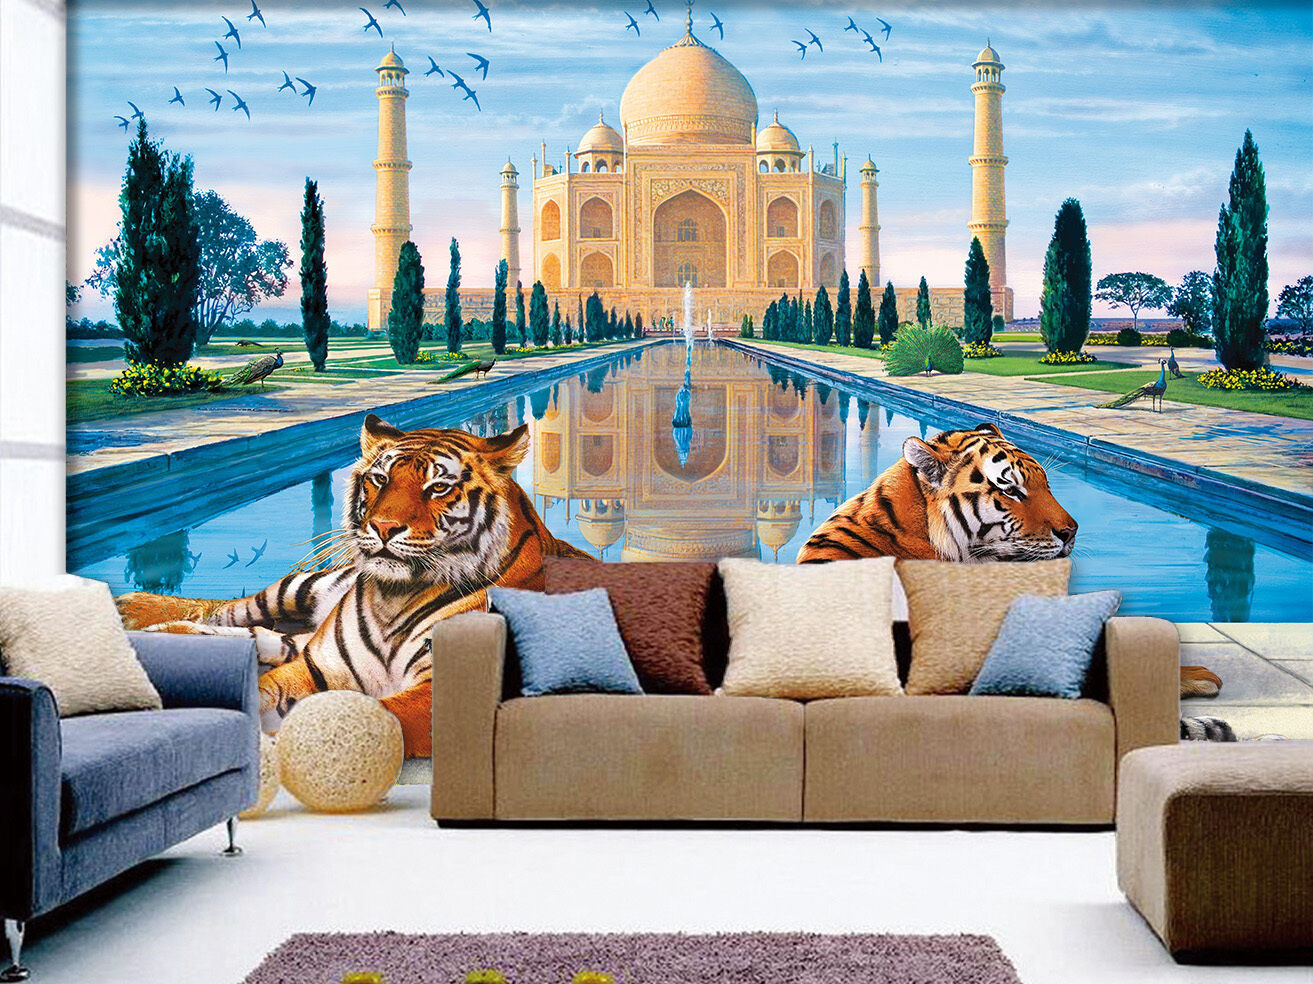 3D Taj Mahal Tigers 29 WallPaper Murals Wall Print Decal Wall Deco AJ WALLPAPER